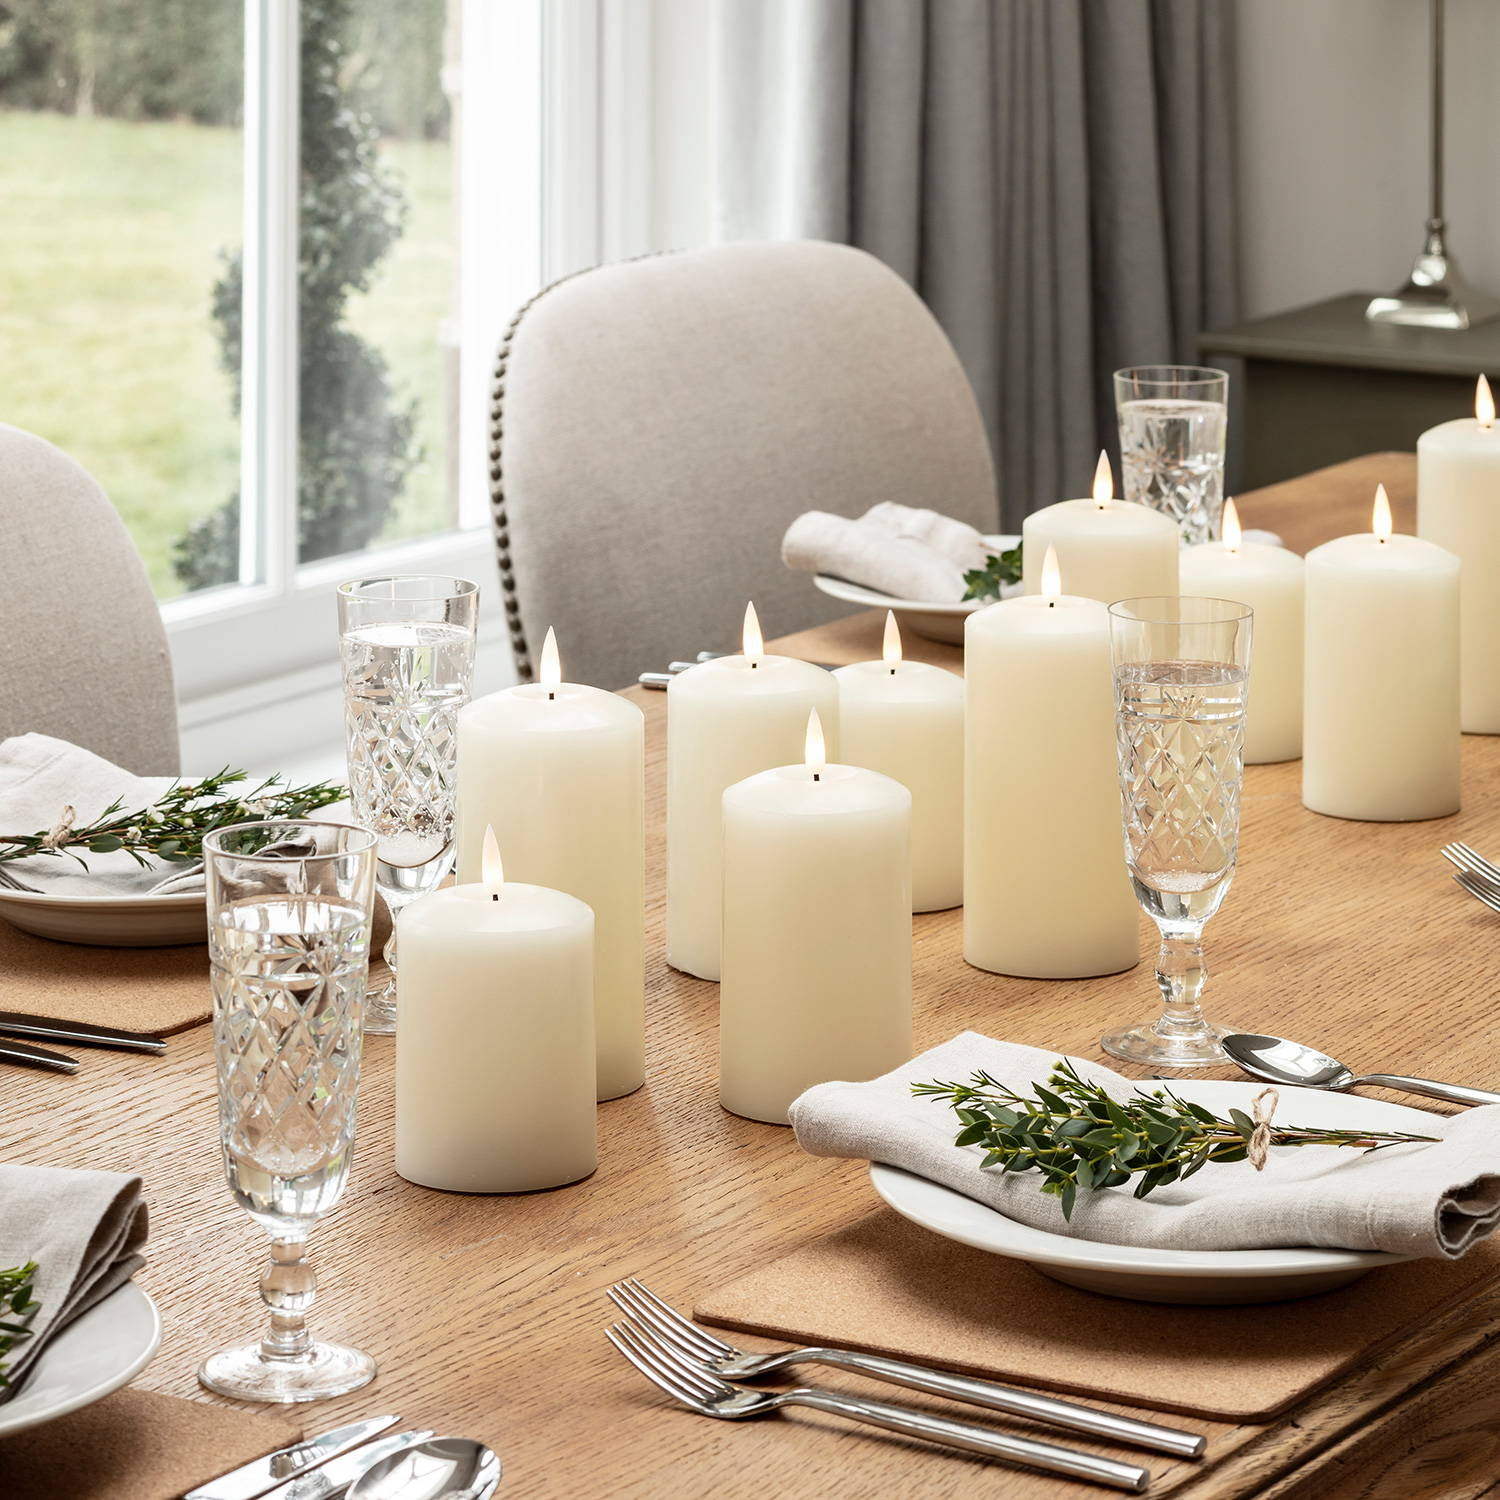 Assortment of ivory TruGlow candles  styled as table centrepiece